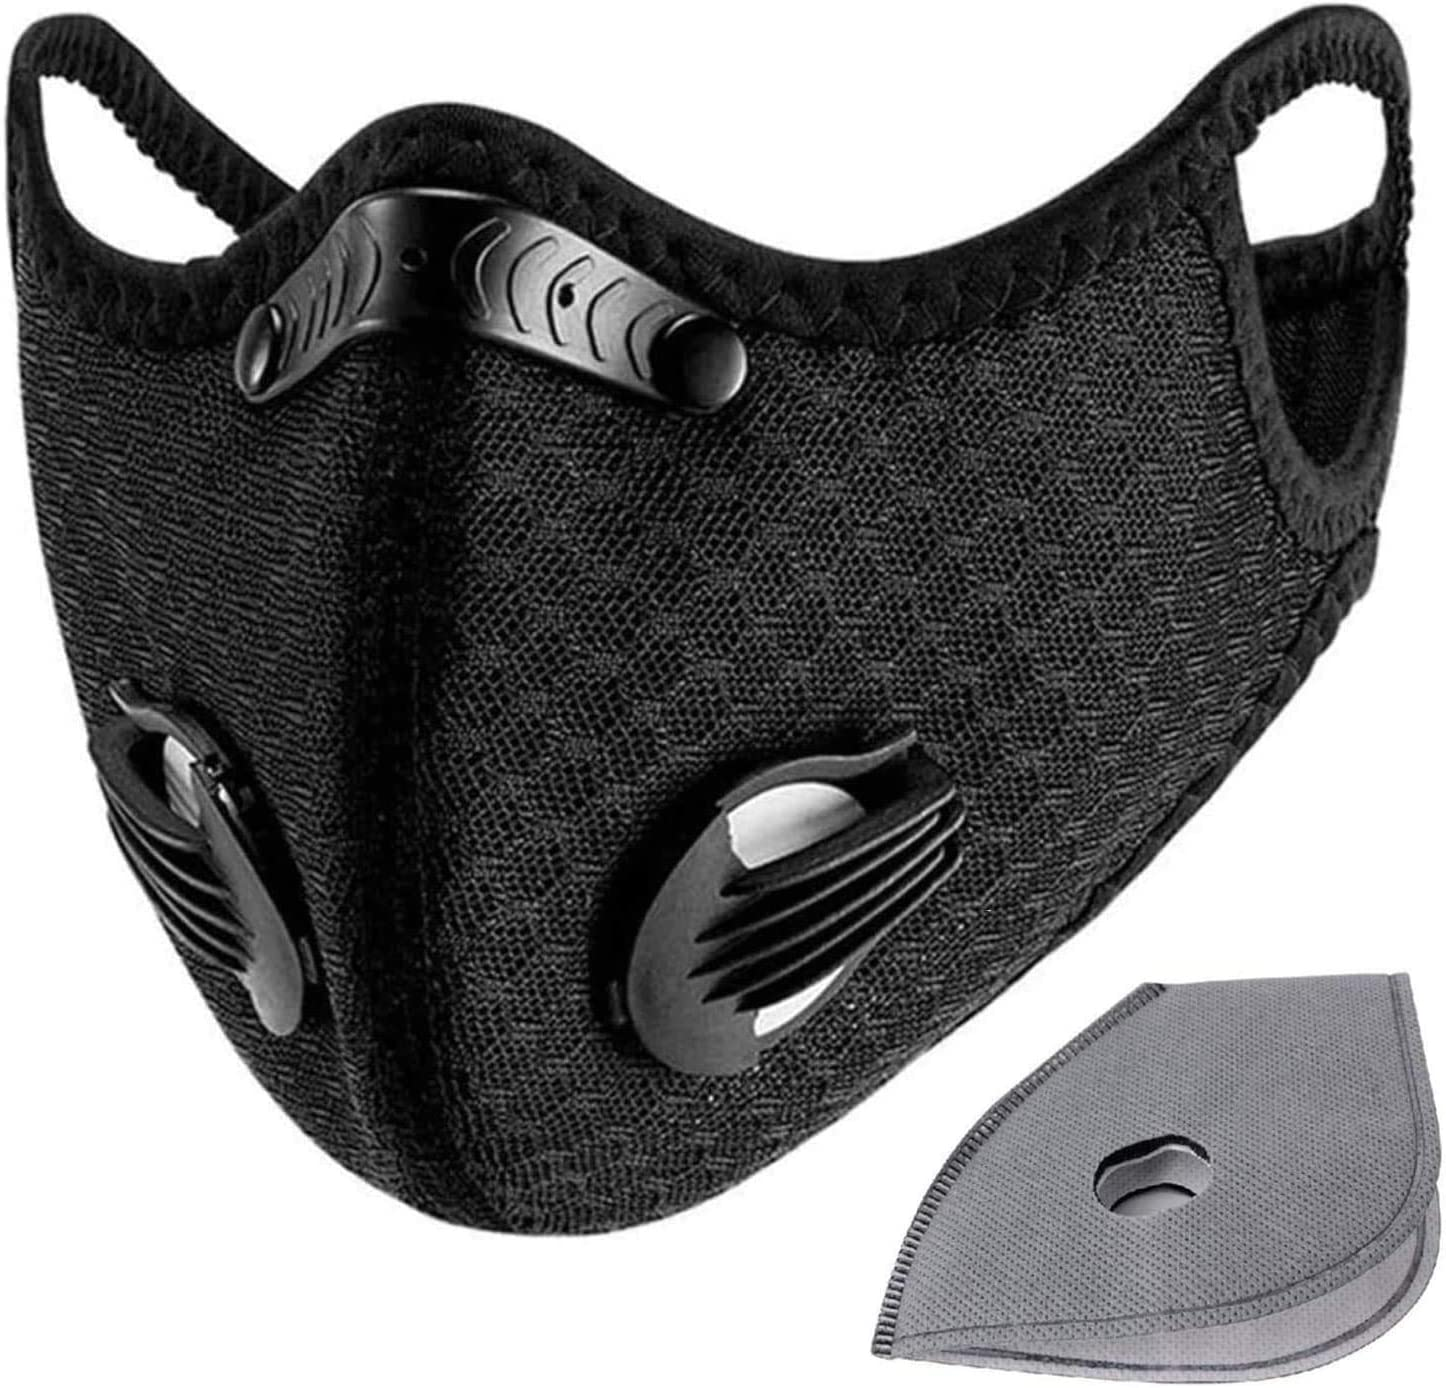 Dust Mask/Outdoor Sports Mask (Cycling, Running)